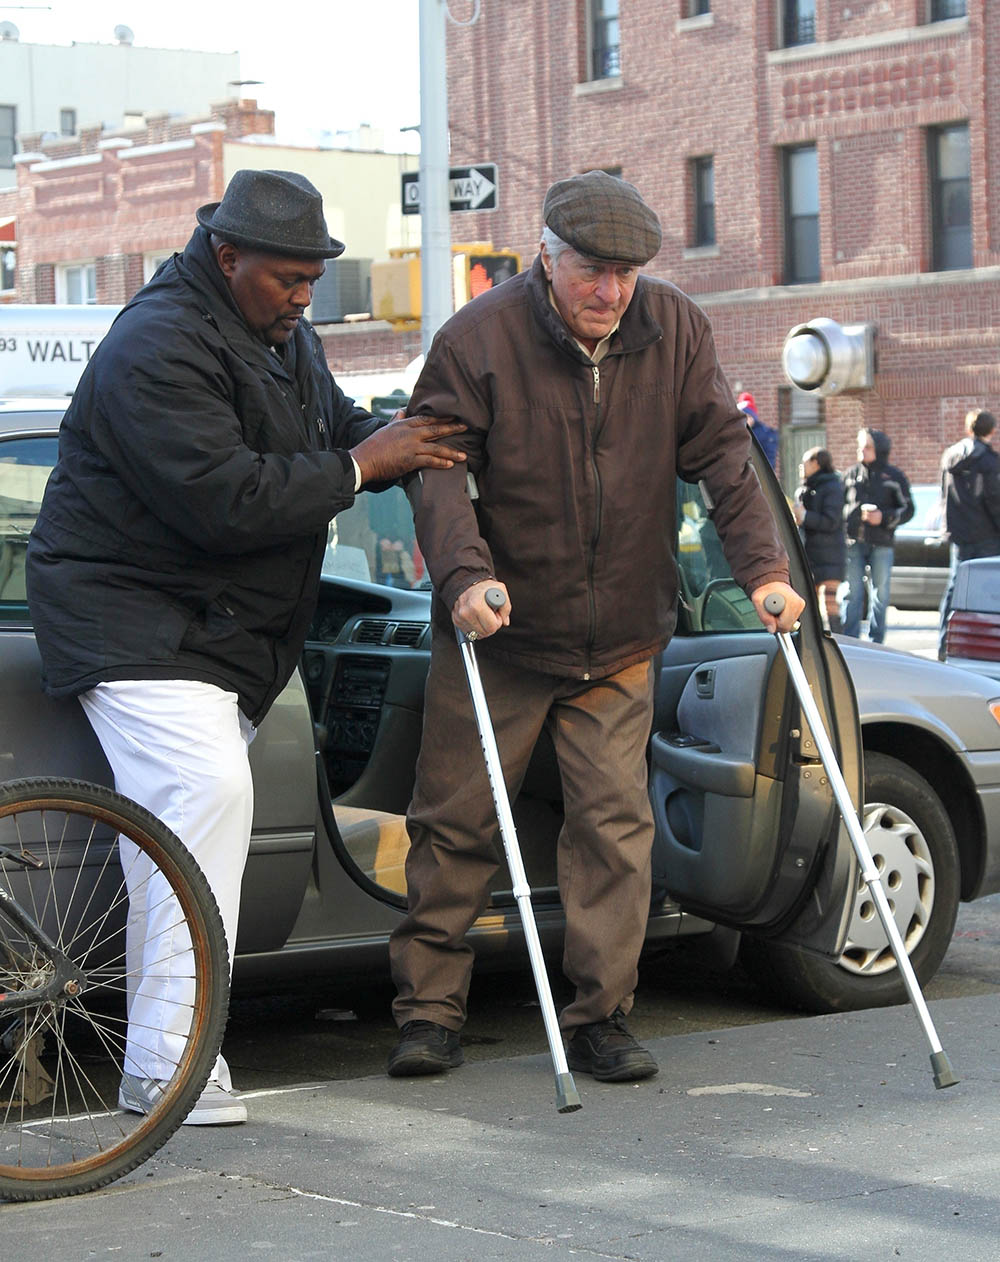 An older looking Robert De Niro is assisted out of his car while filming The Irishman